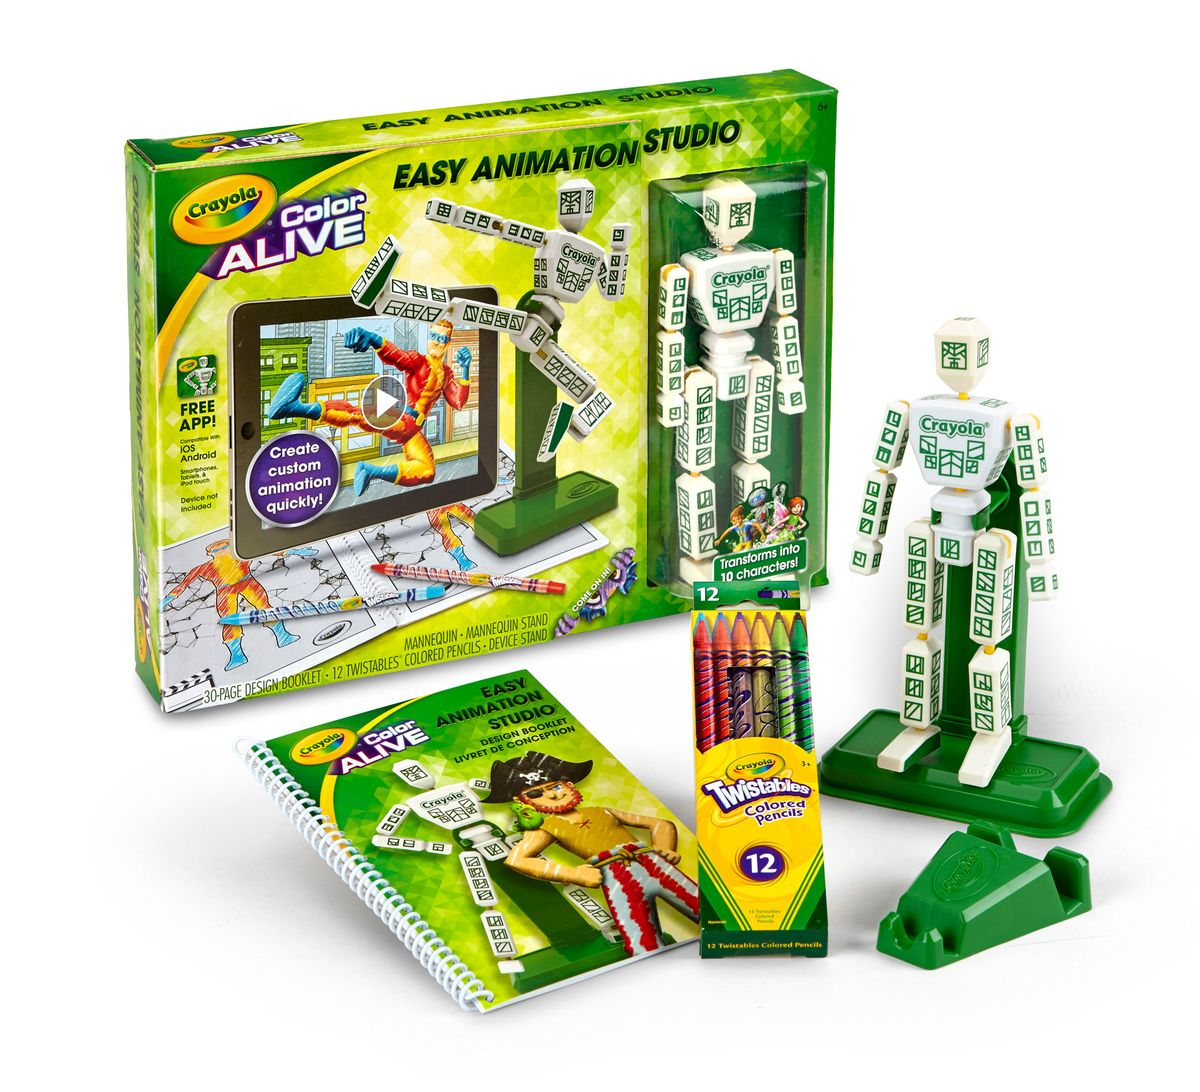 2015 Holiday Gift Guide with Crayola Crayons! #Easy Animation Studio ...